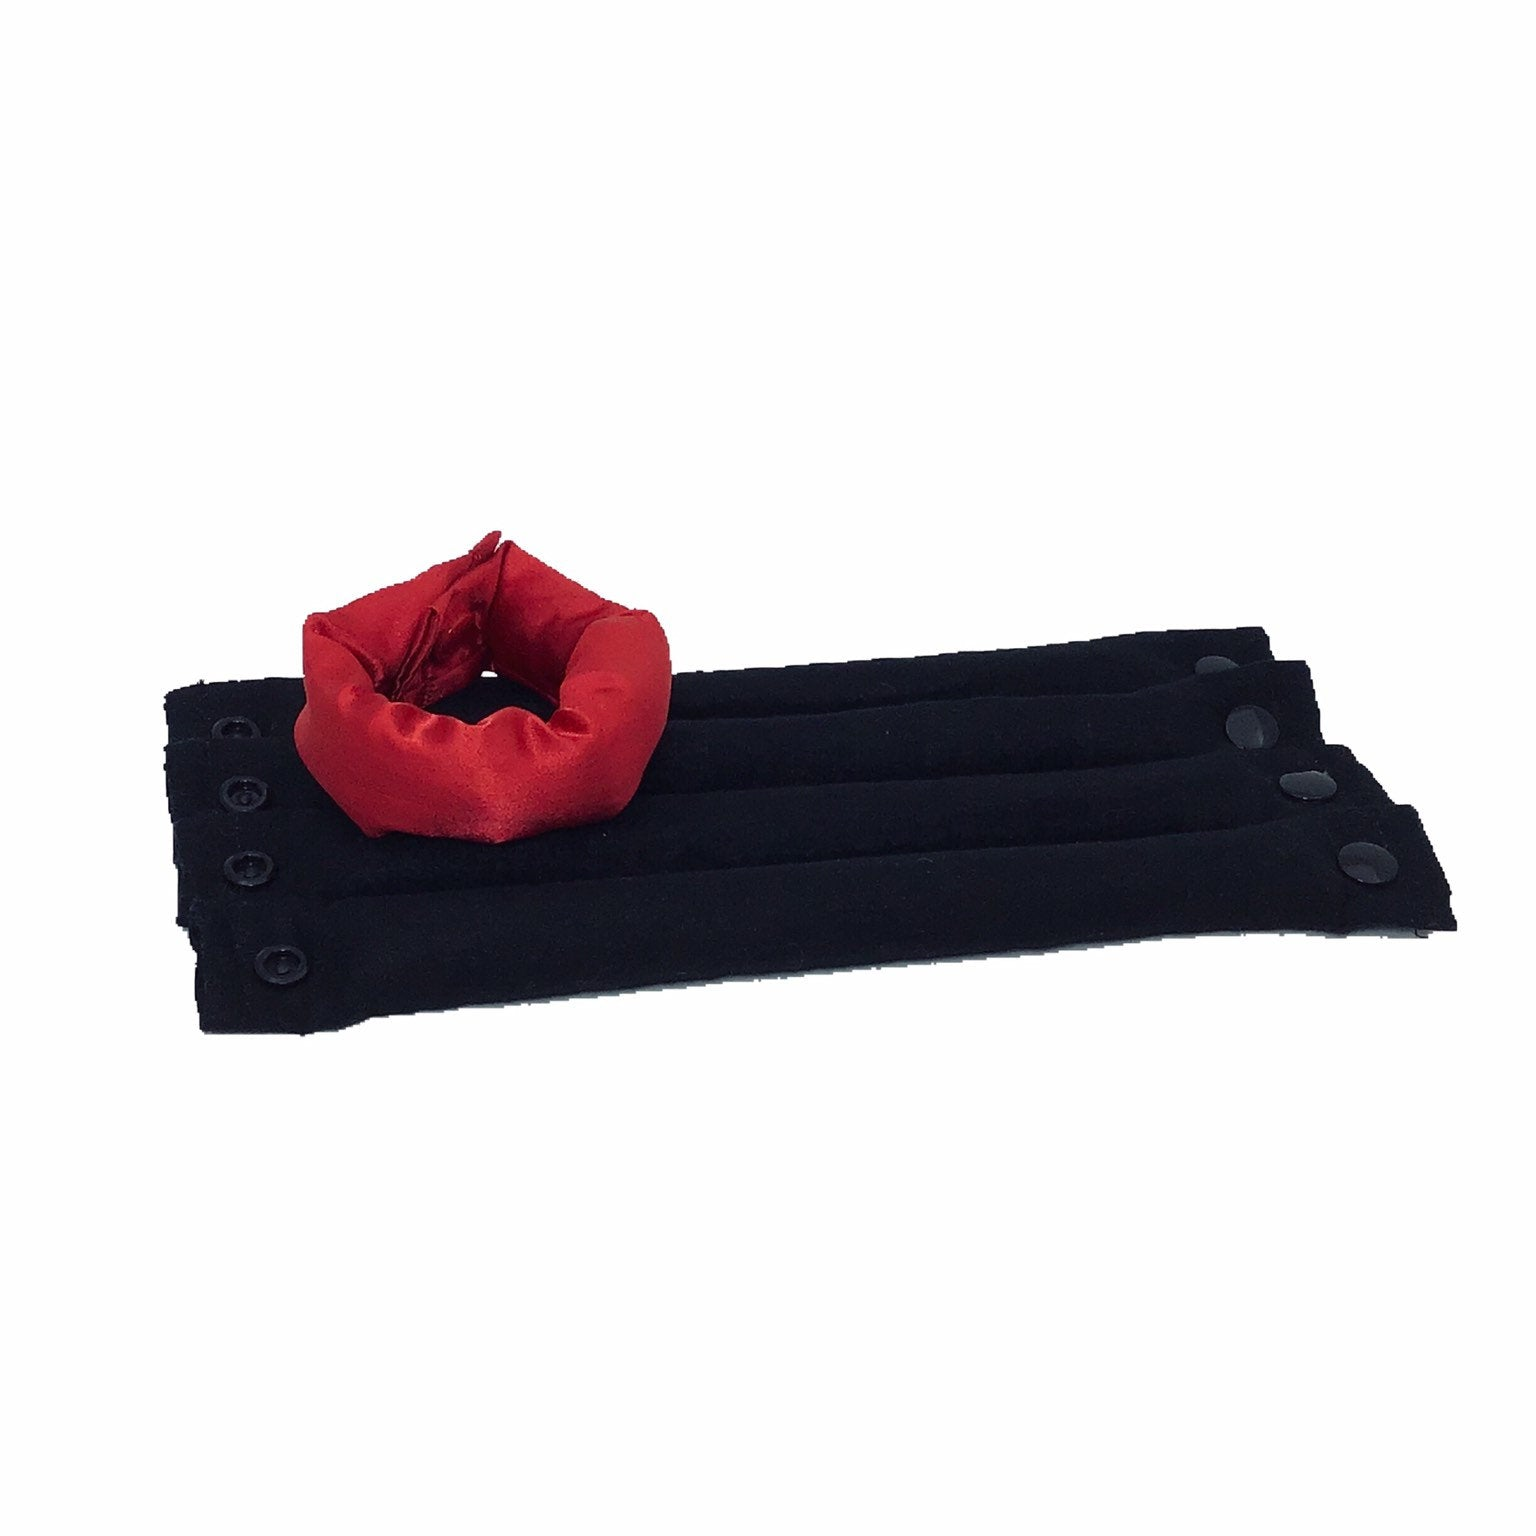 Thin Red Line Soft Fabric Hair Rollers/ Hair Accessories / Fabric Hair Curlers - My Easy Curls